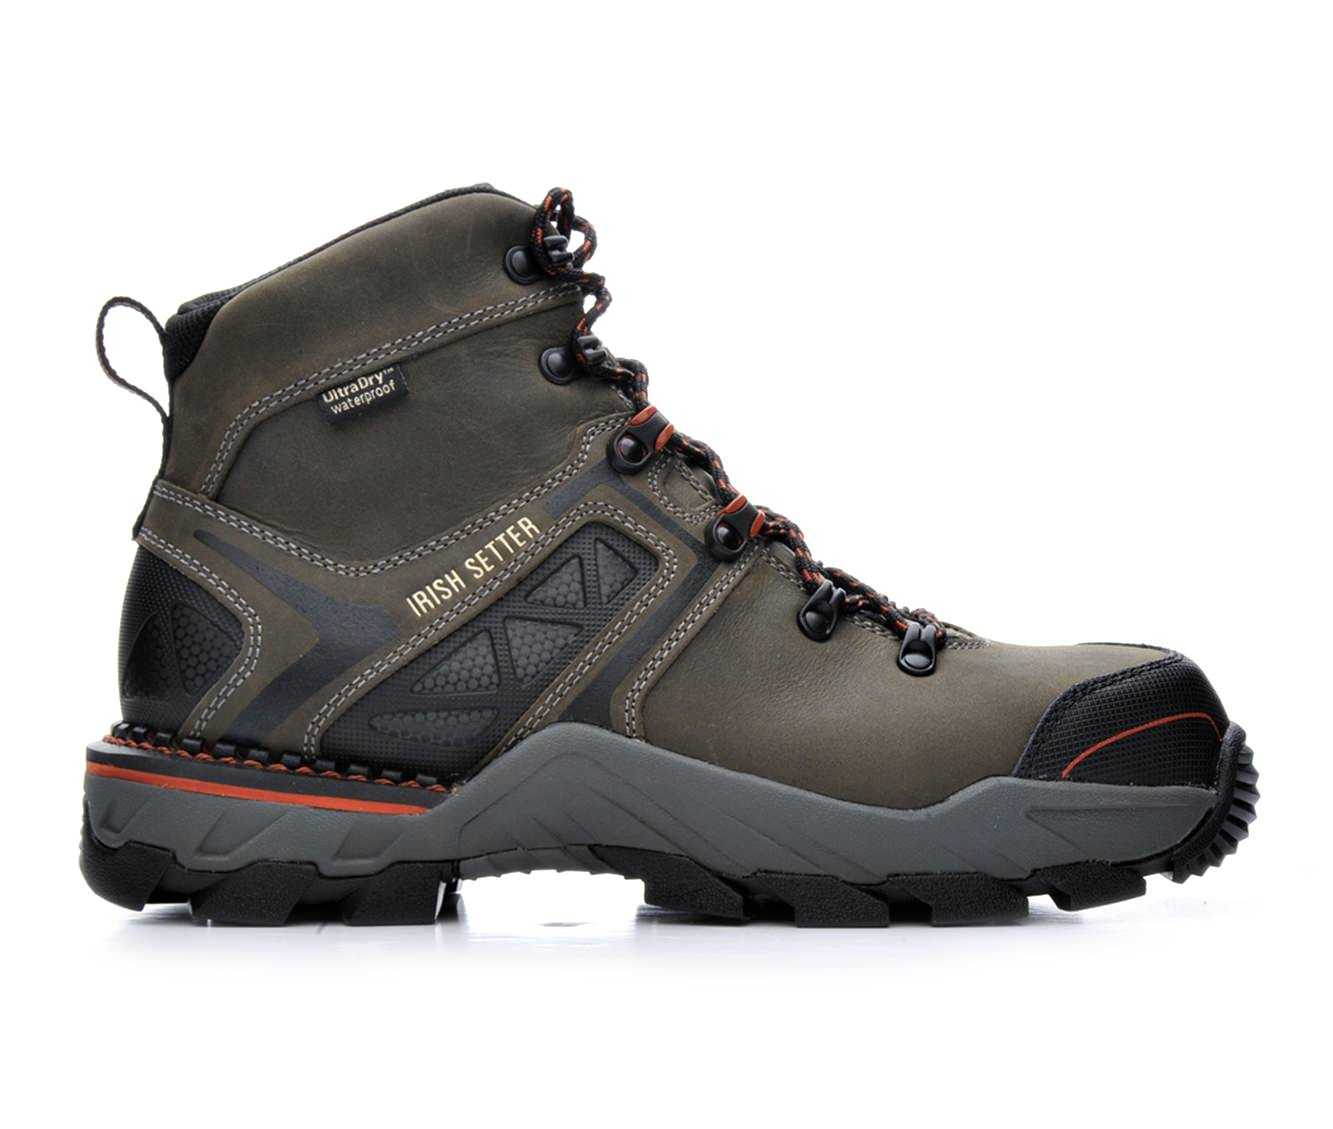 Red Wing-Irish Setter 83628 Crosby Composite Toe Waterproof Men's Boots (Gray Leather)